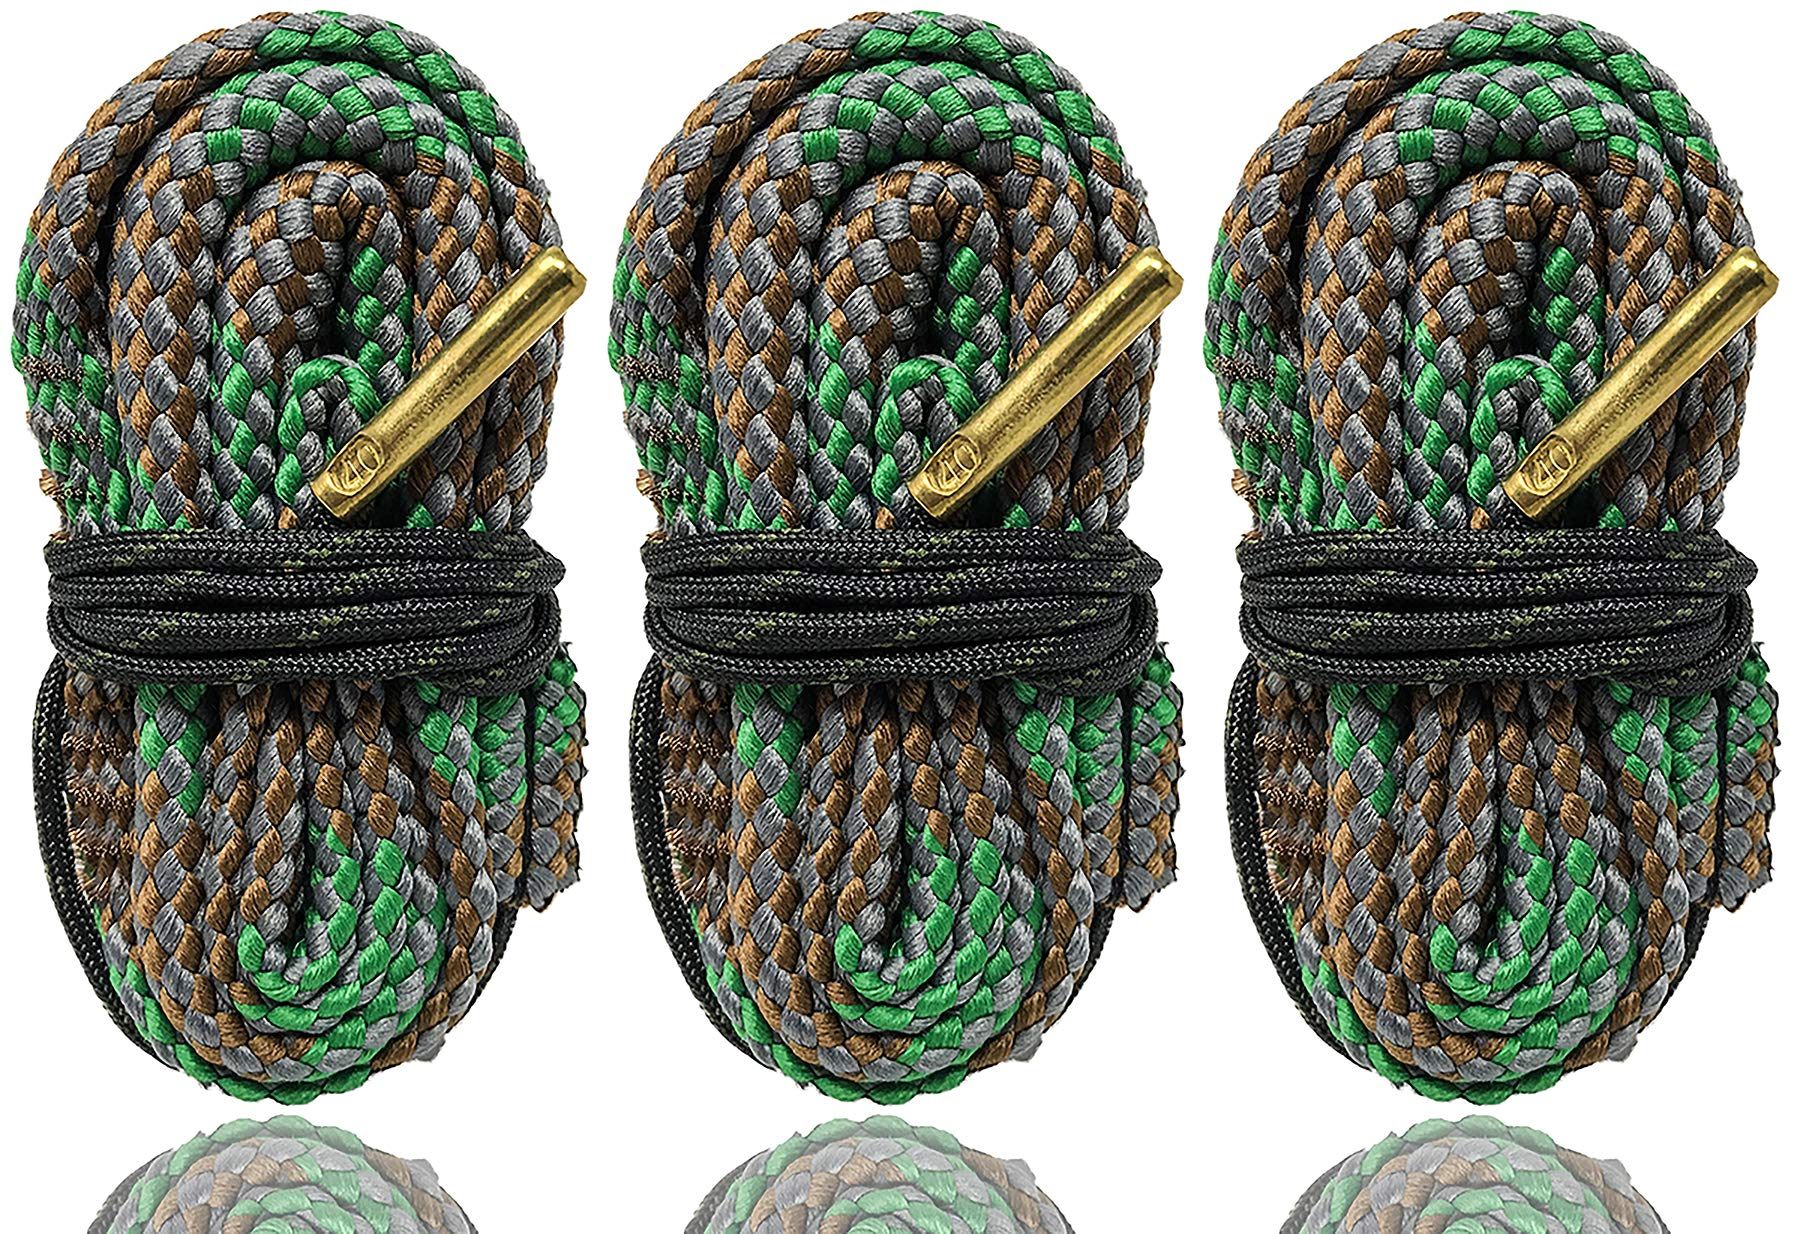 Cobra Bore Snakes 3 Pack 40 Caliber Bore Snakes Easy One Pull Cleans Your 40 Cal Easy - Compatible With Most Pistols Including Glock Smith And Wesson Ruger Kimber Taurus Browning Springfield And More by Big Country Wholesale